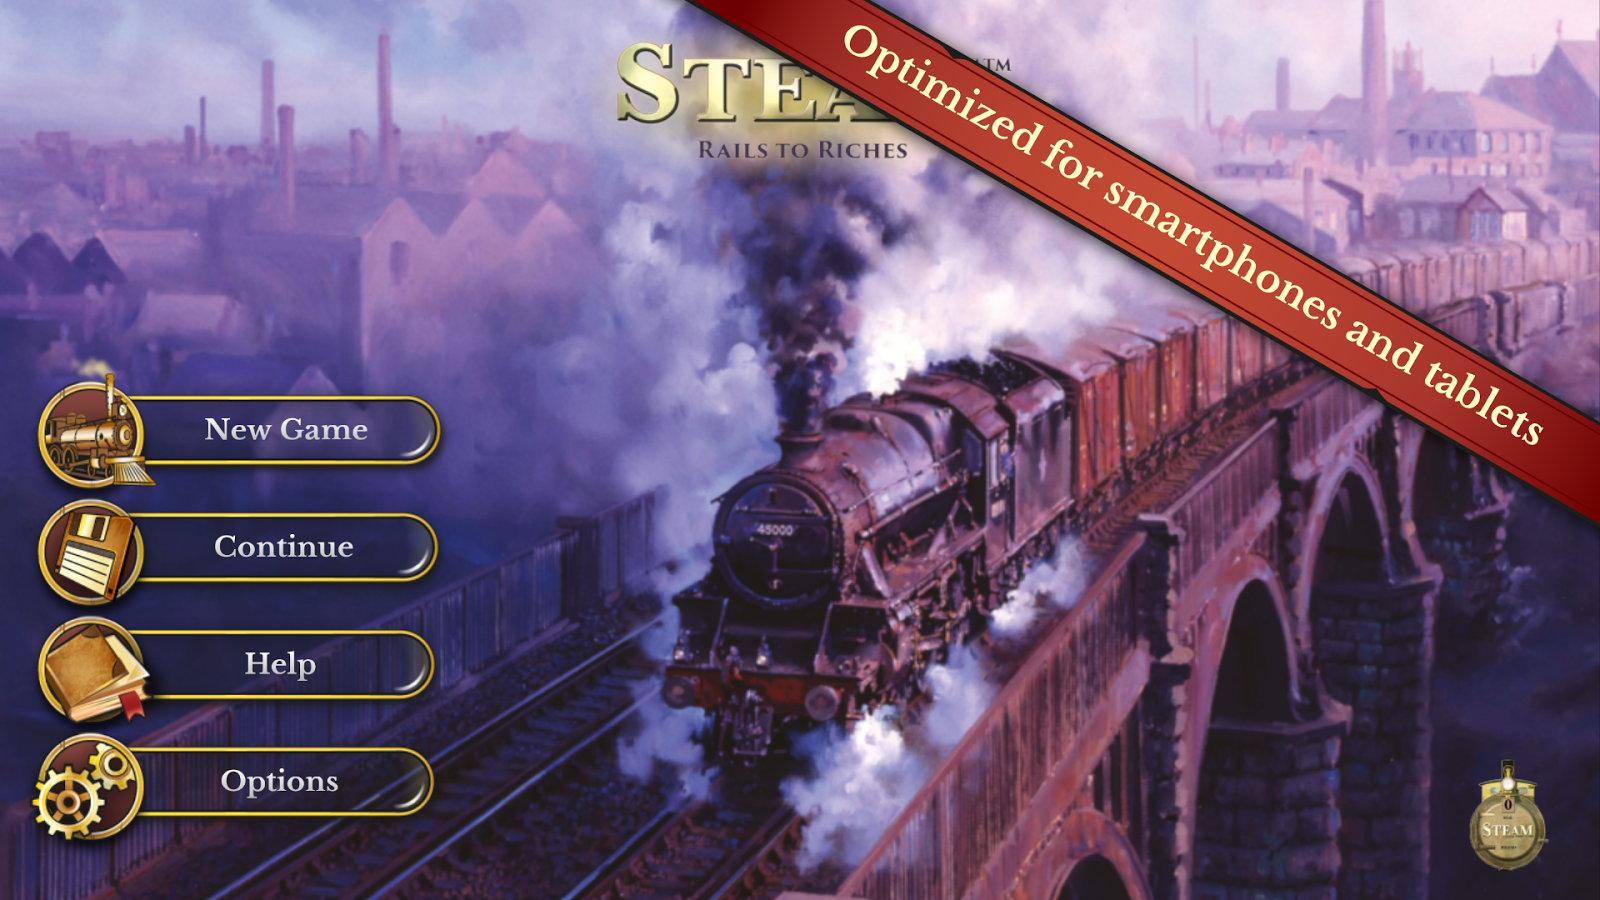 Steam: Rails to Riches Screenshot 2